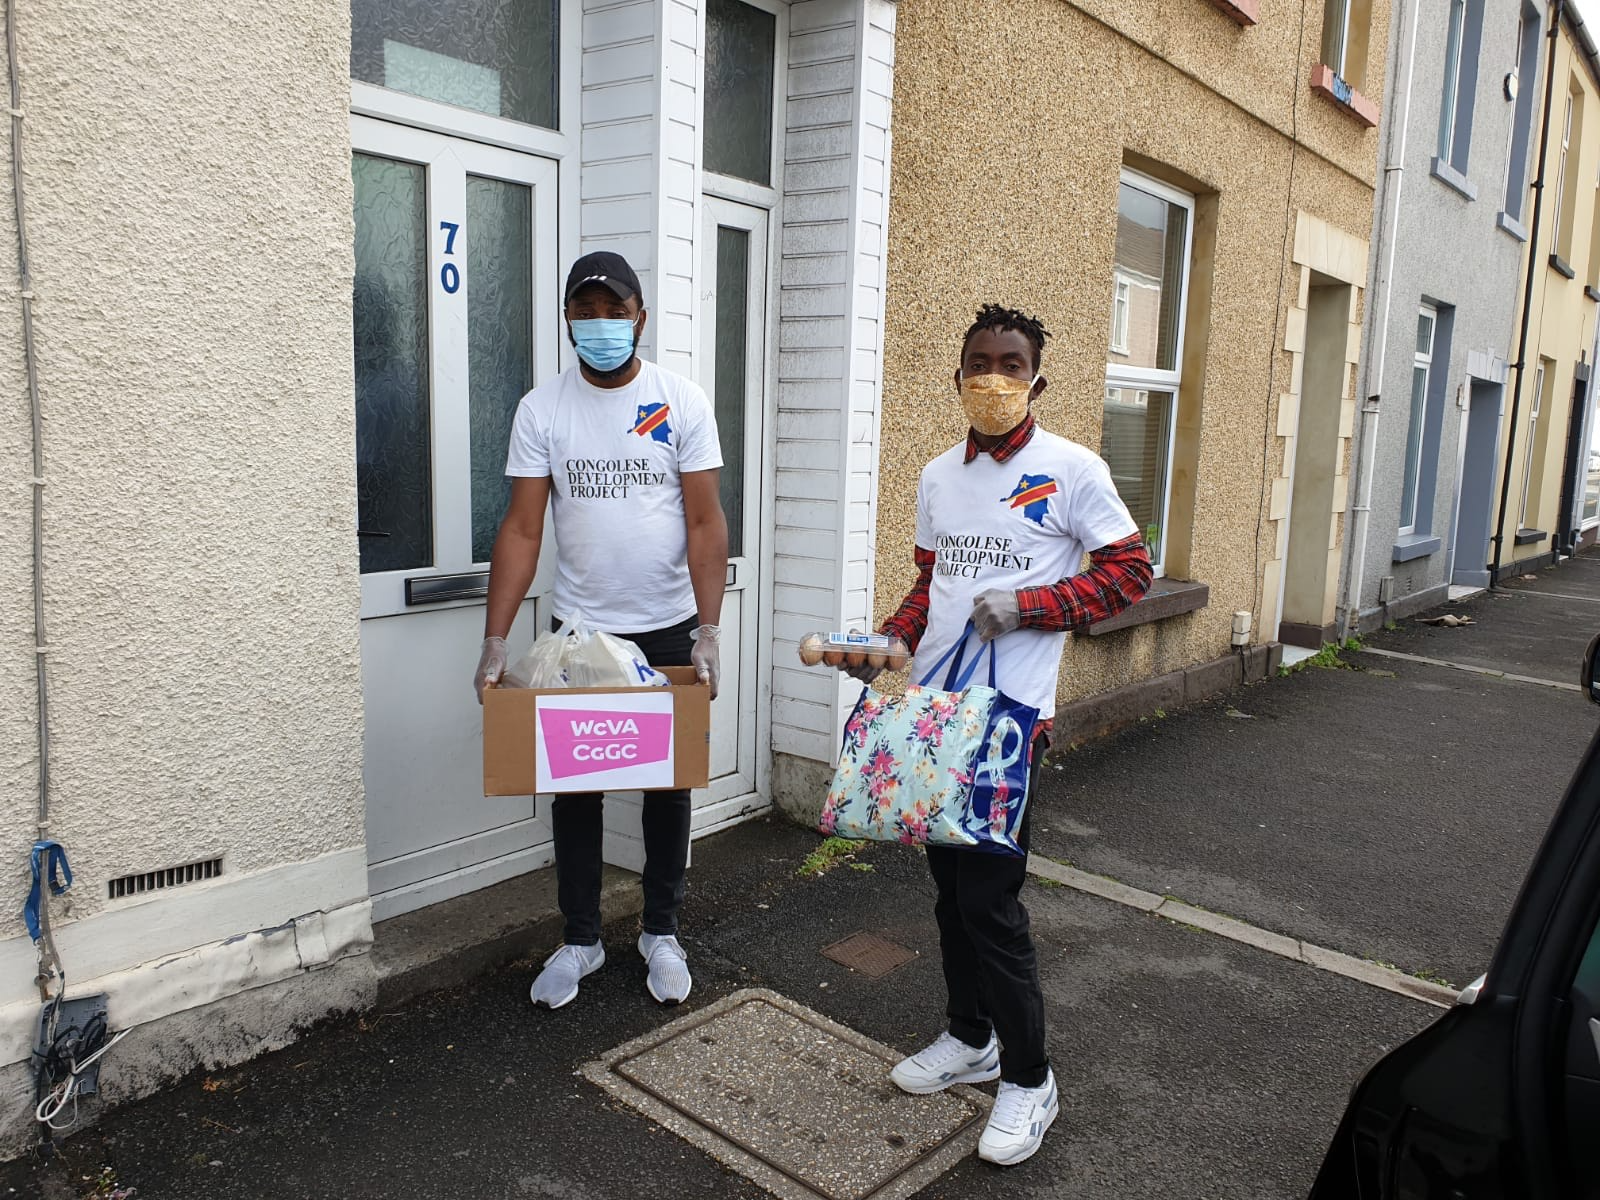 Two young black men deliver food items to a doorstep on a terraced street. They are wearing face masks and Congolese Development Project t-shirts